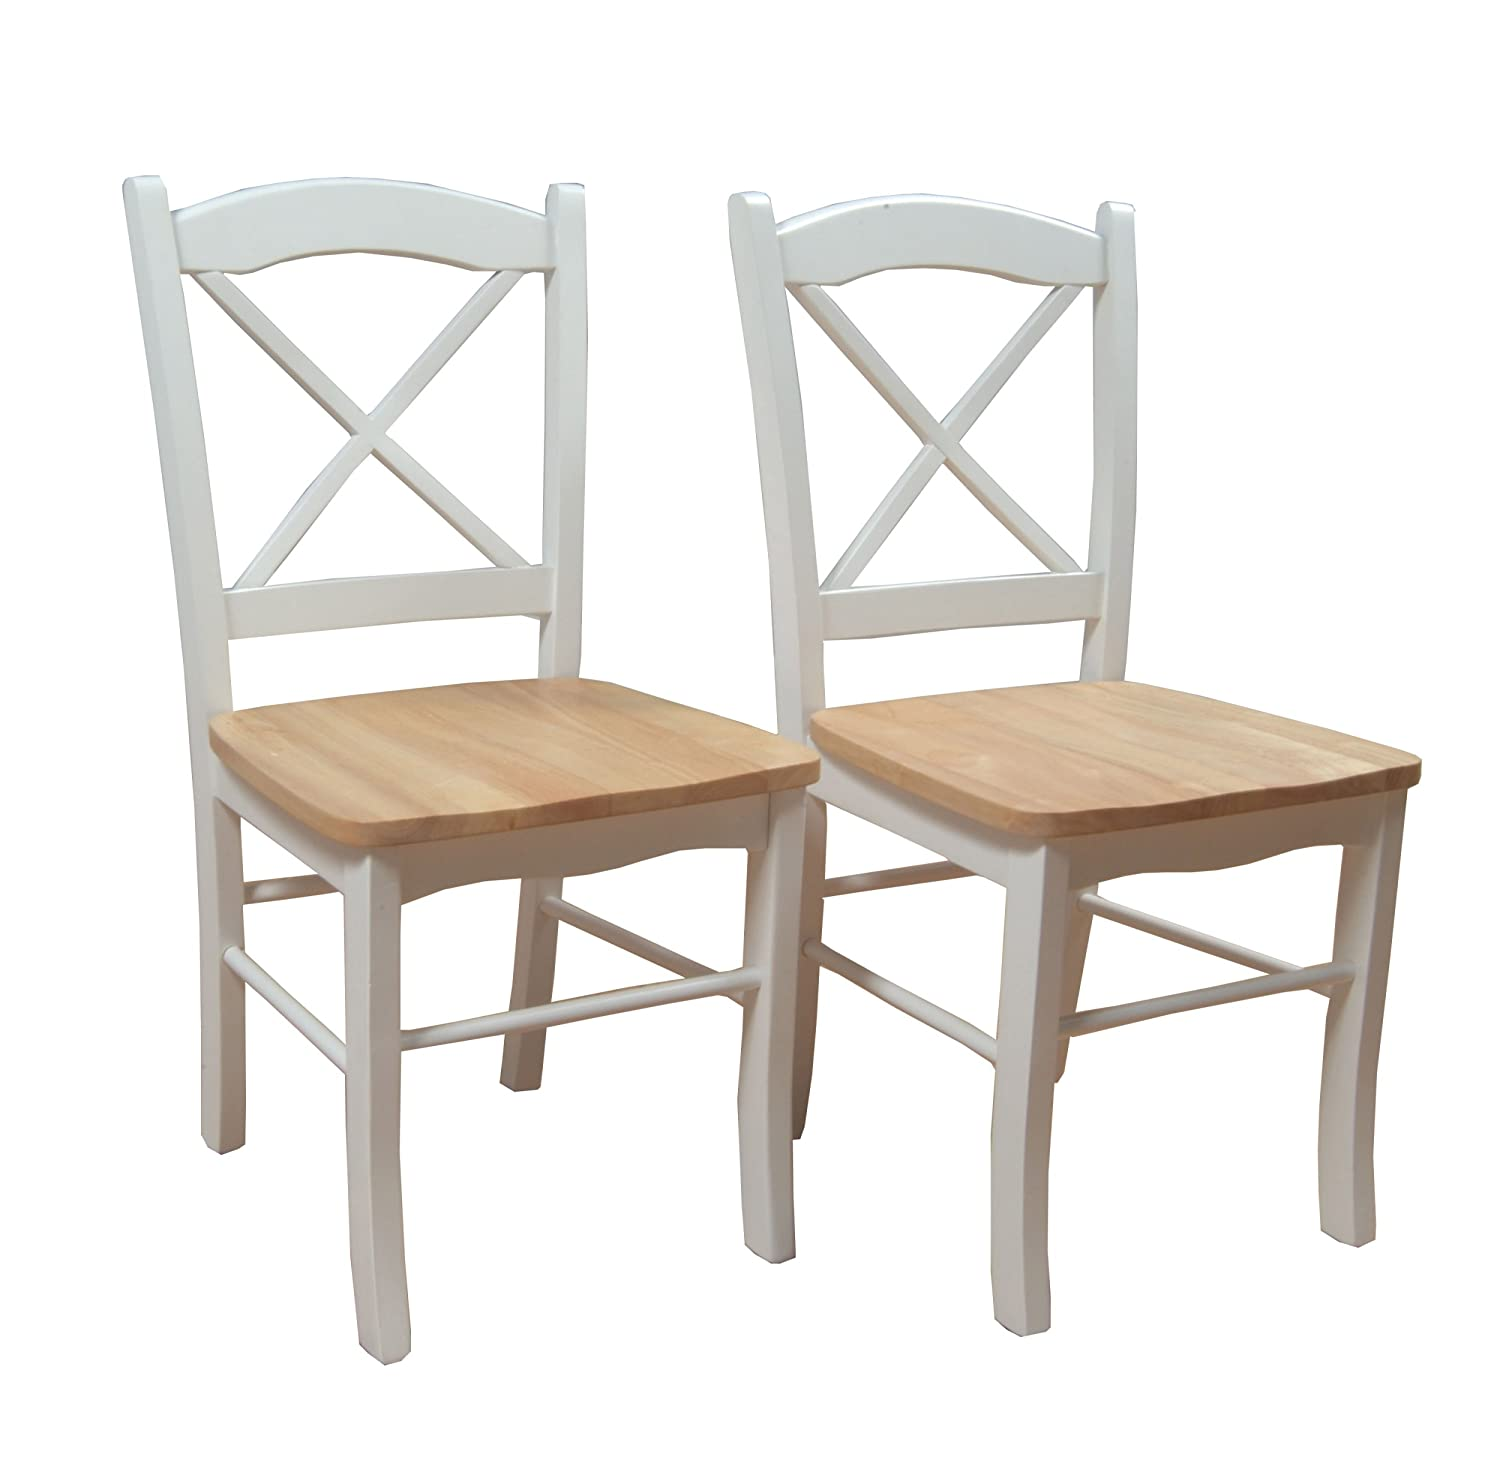 Target Marketing Systems Set of 2 Tiffany Dining Chairs with Cross Back, Set of 2, White Natural